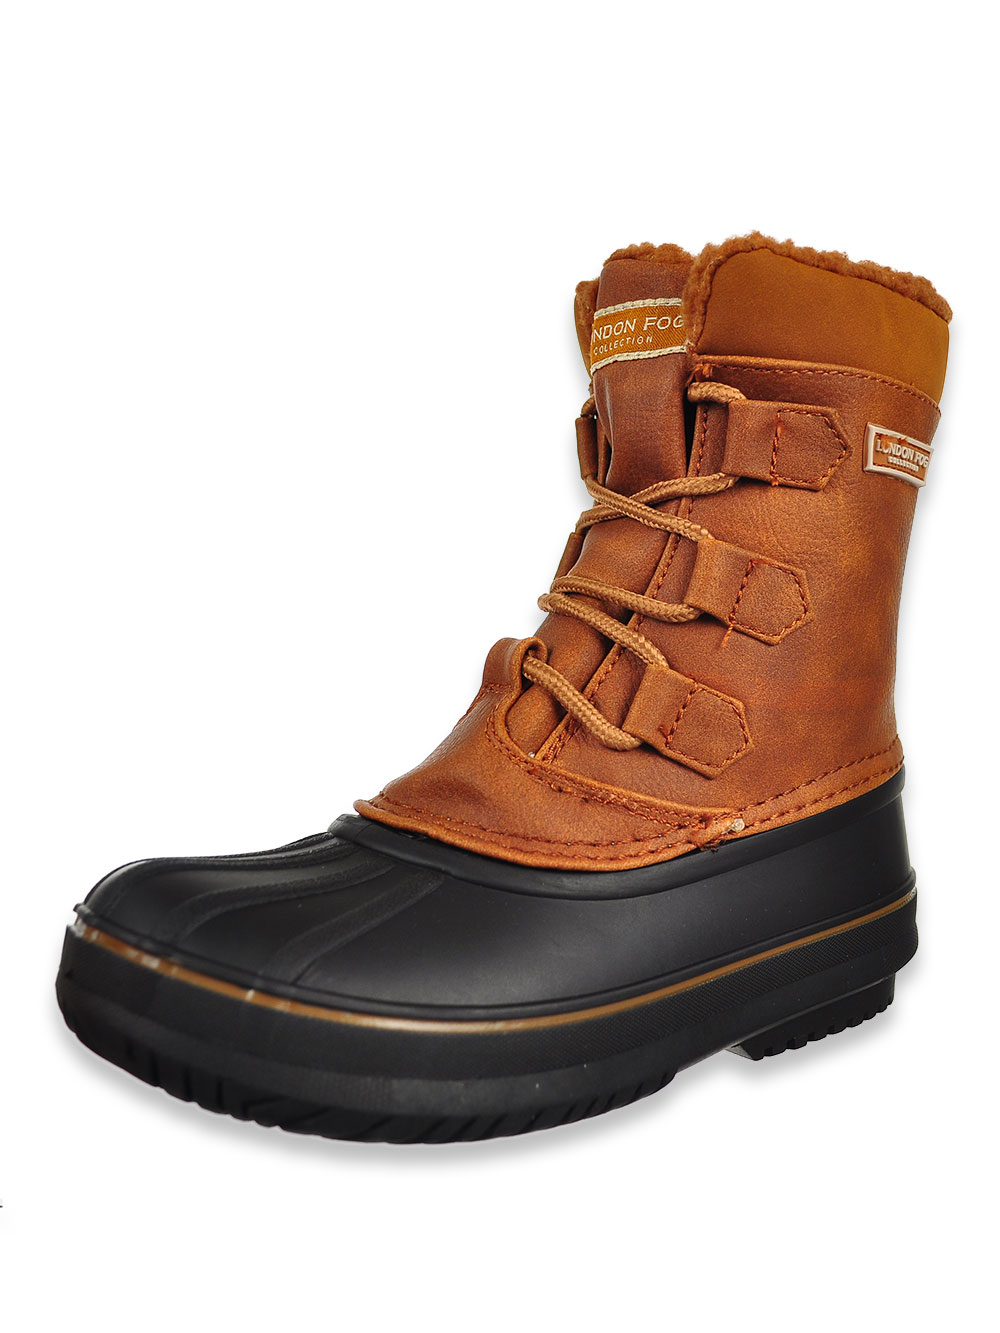 Boys' Cheshire Winter Boots